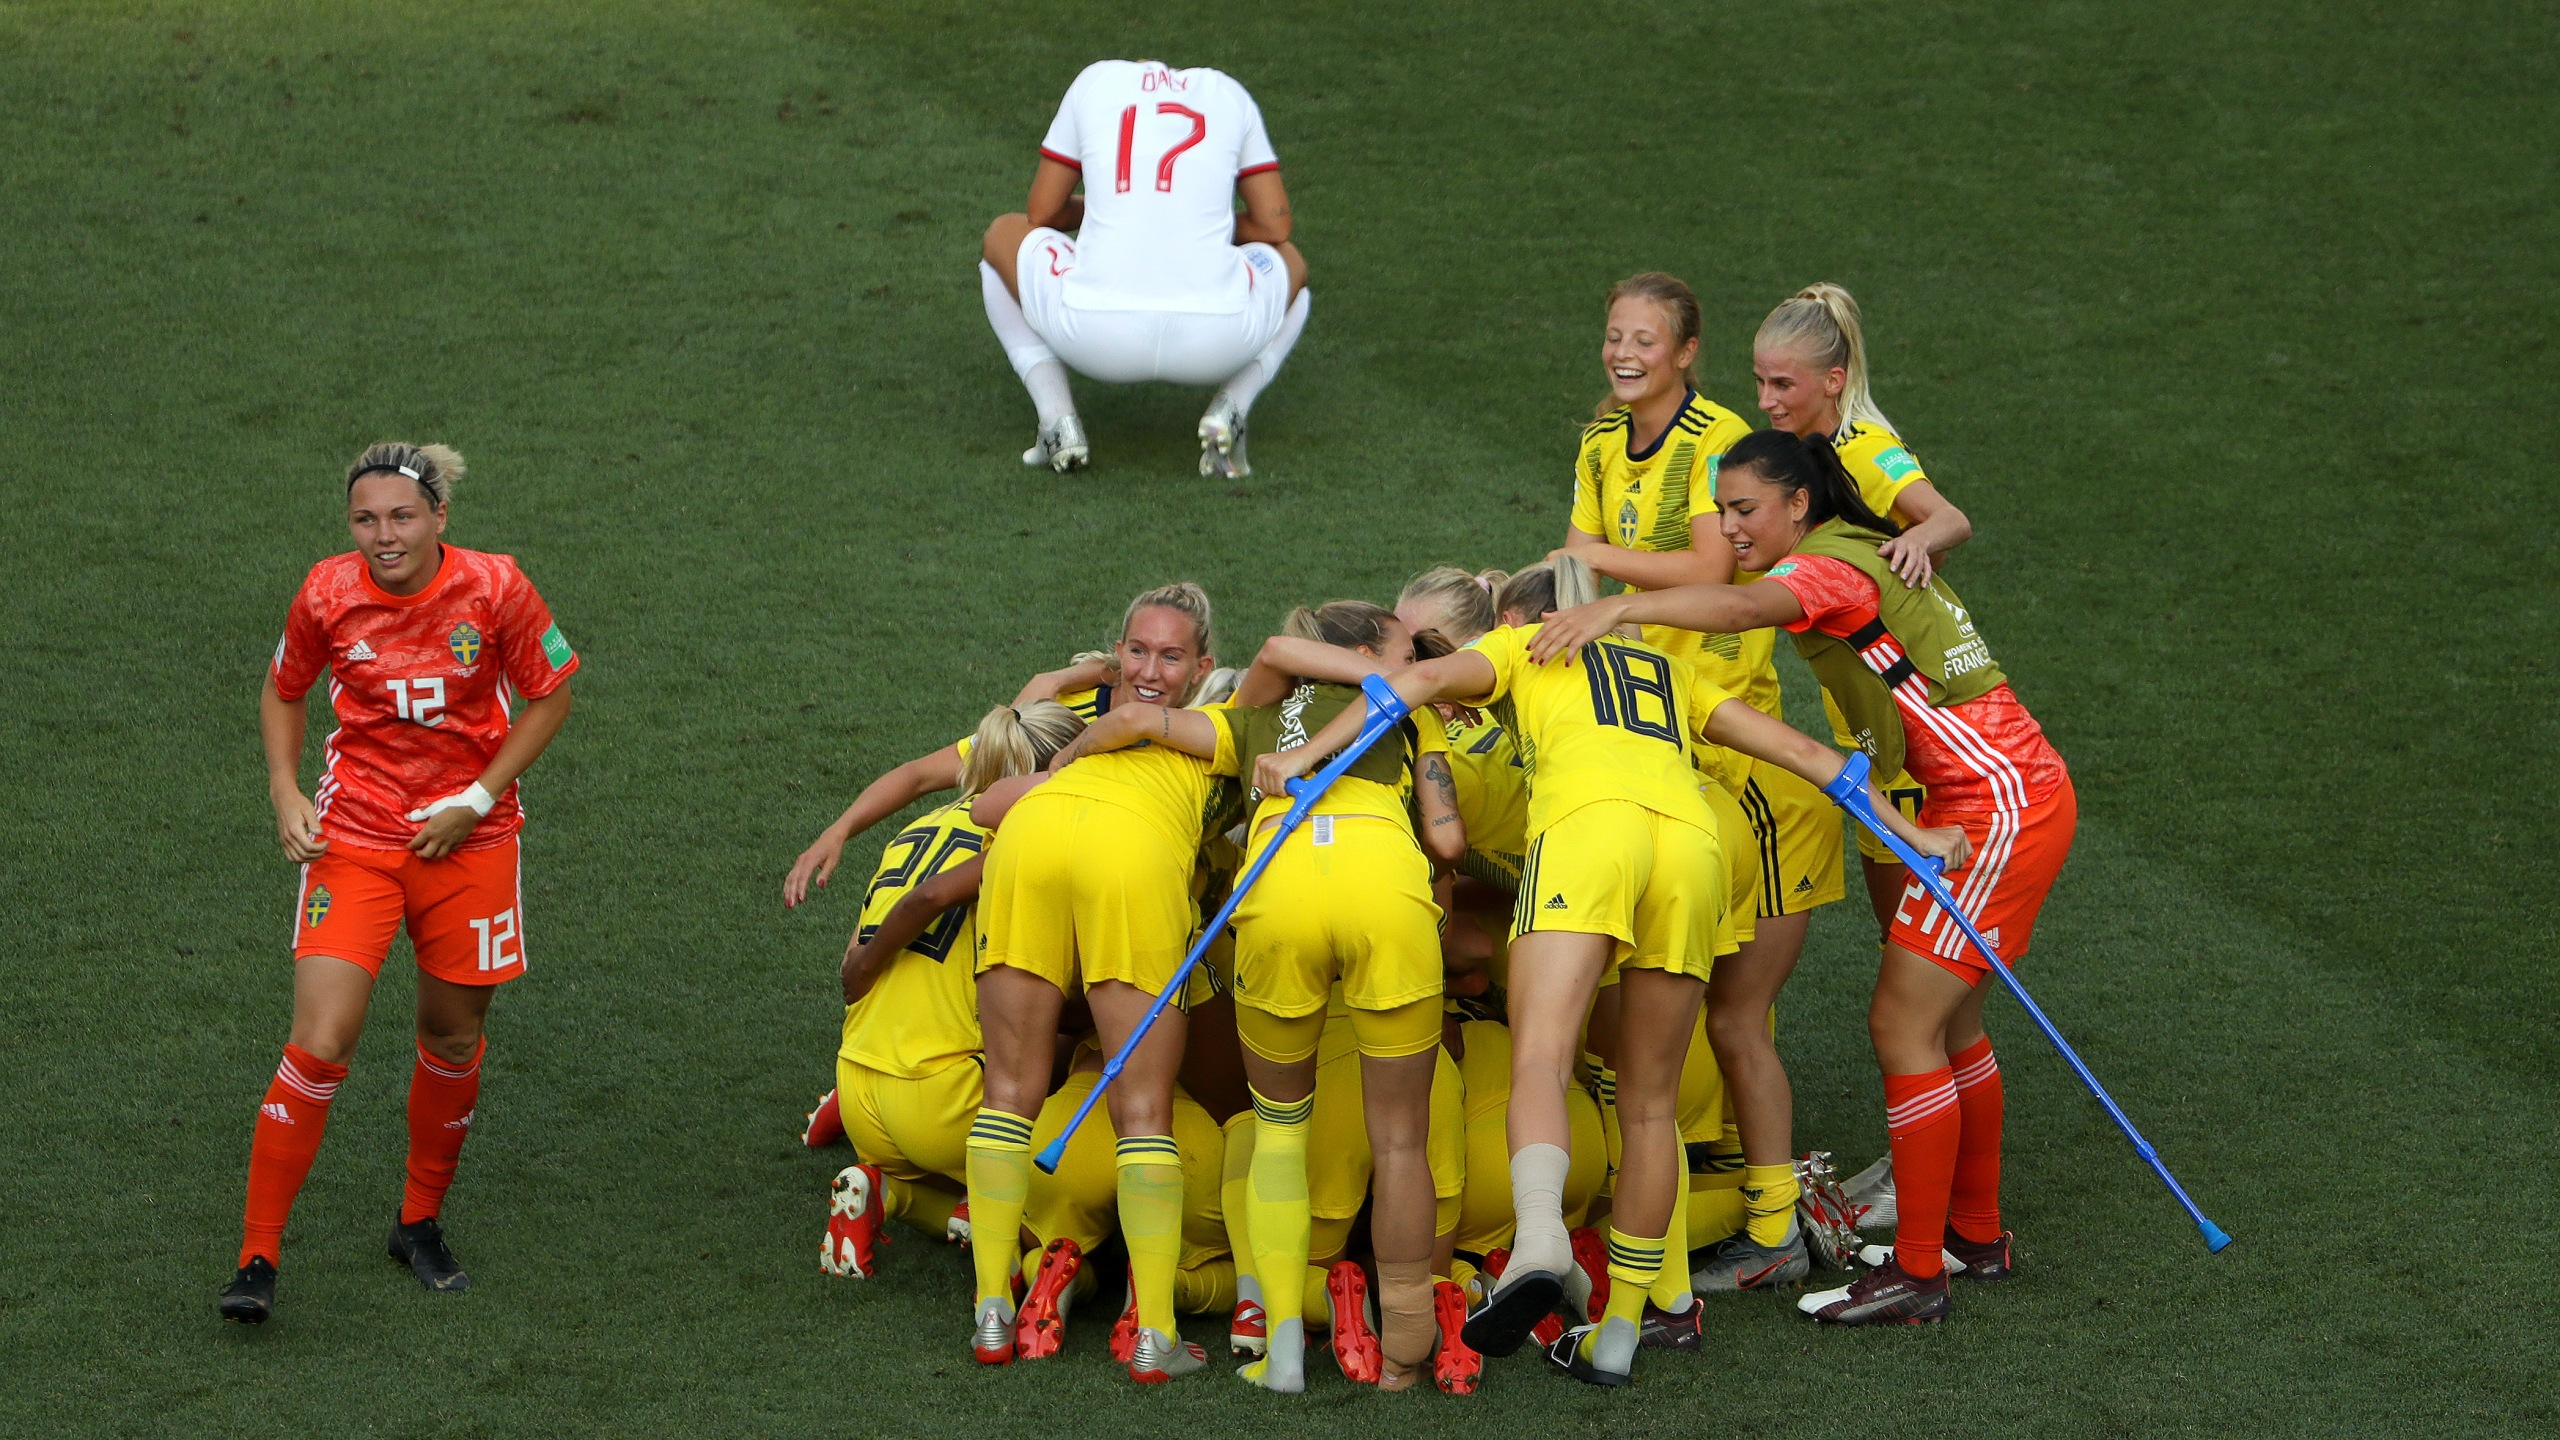 The Sweden players celebrate following their side's victory in the 2019 FIFA Women's World Cup France 3rd Place Match match between England and Sweden at Stade de Nice on July 6, 2019 in Nice, France. (Credit: Robert Cianflone/Getty Images)